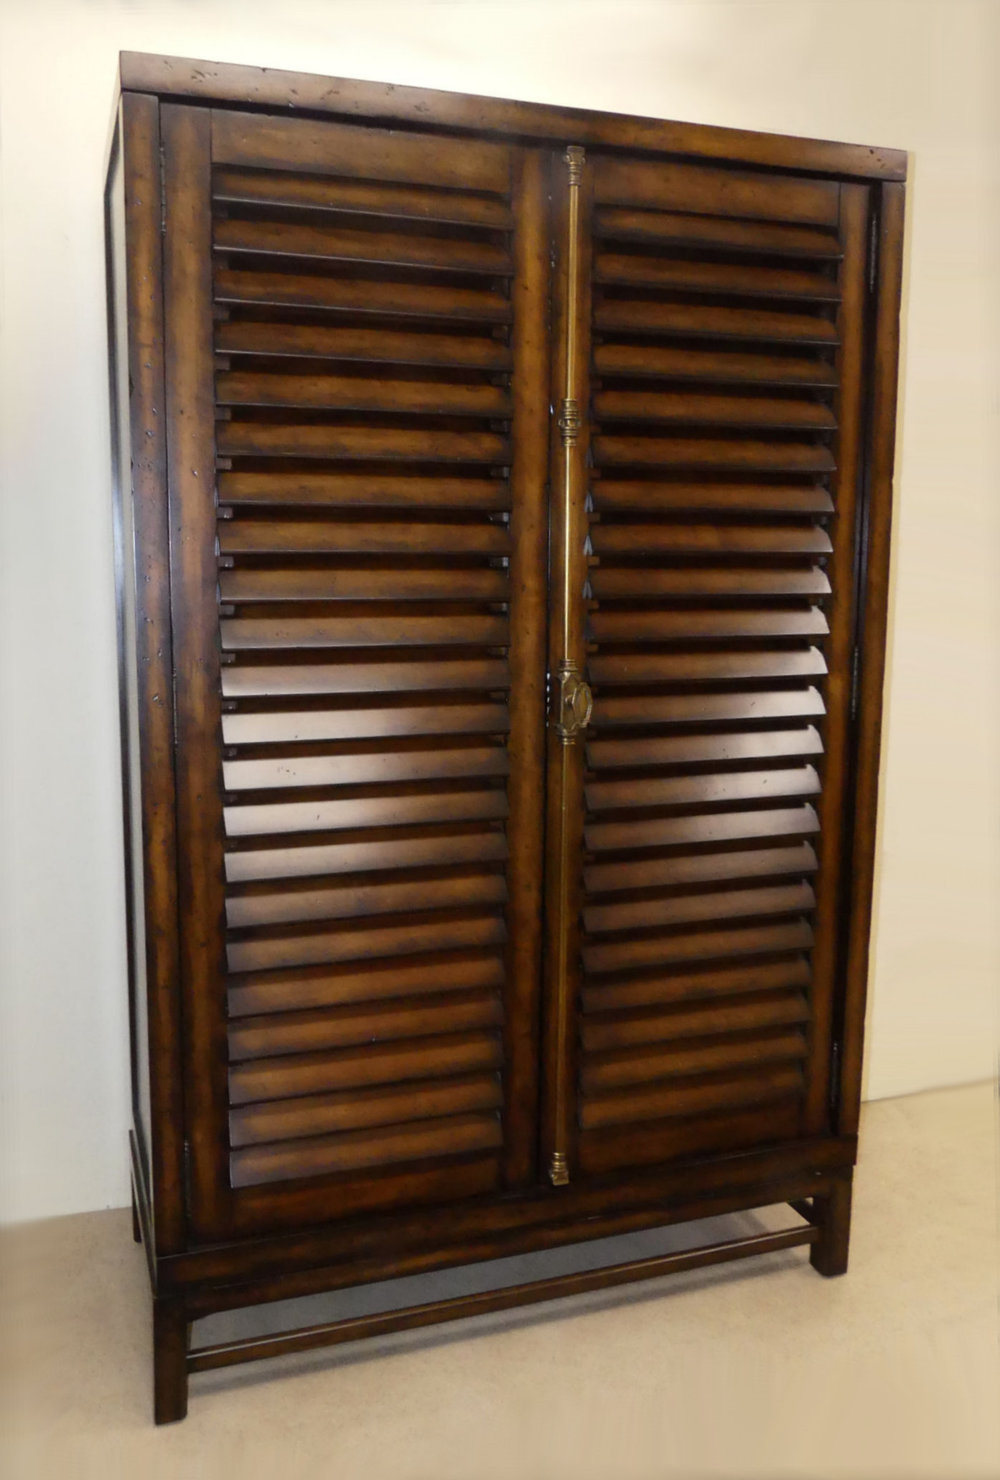 View the matching armoire here...